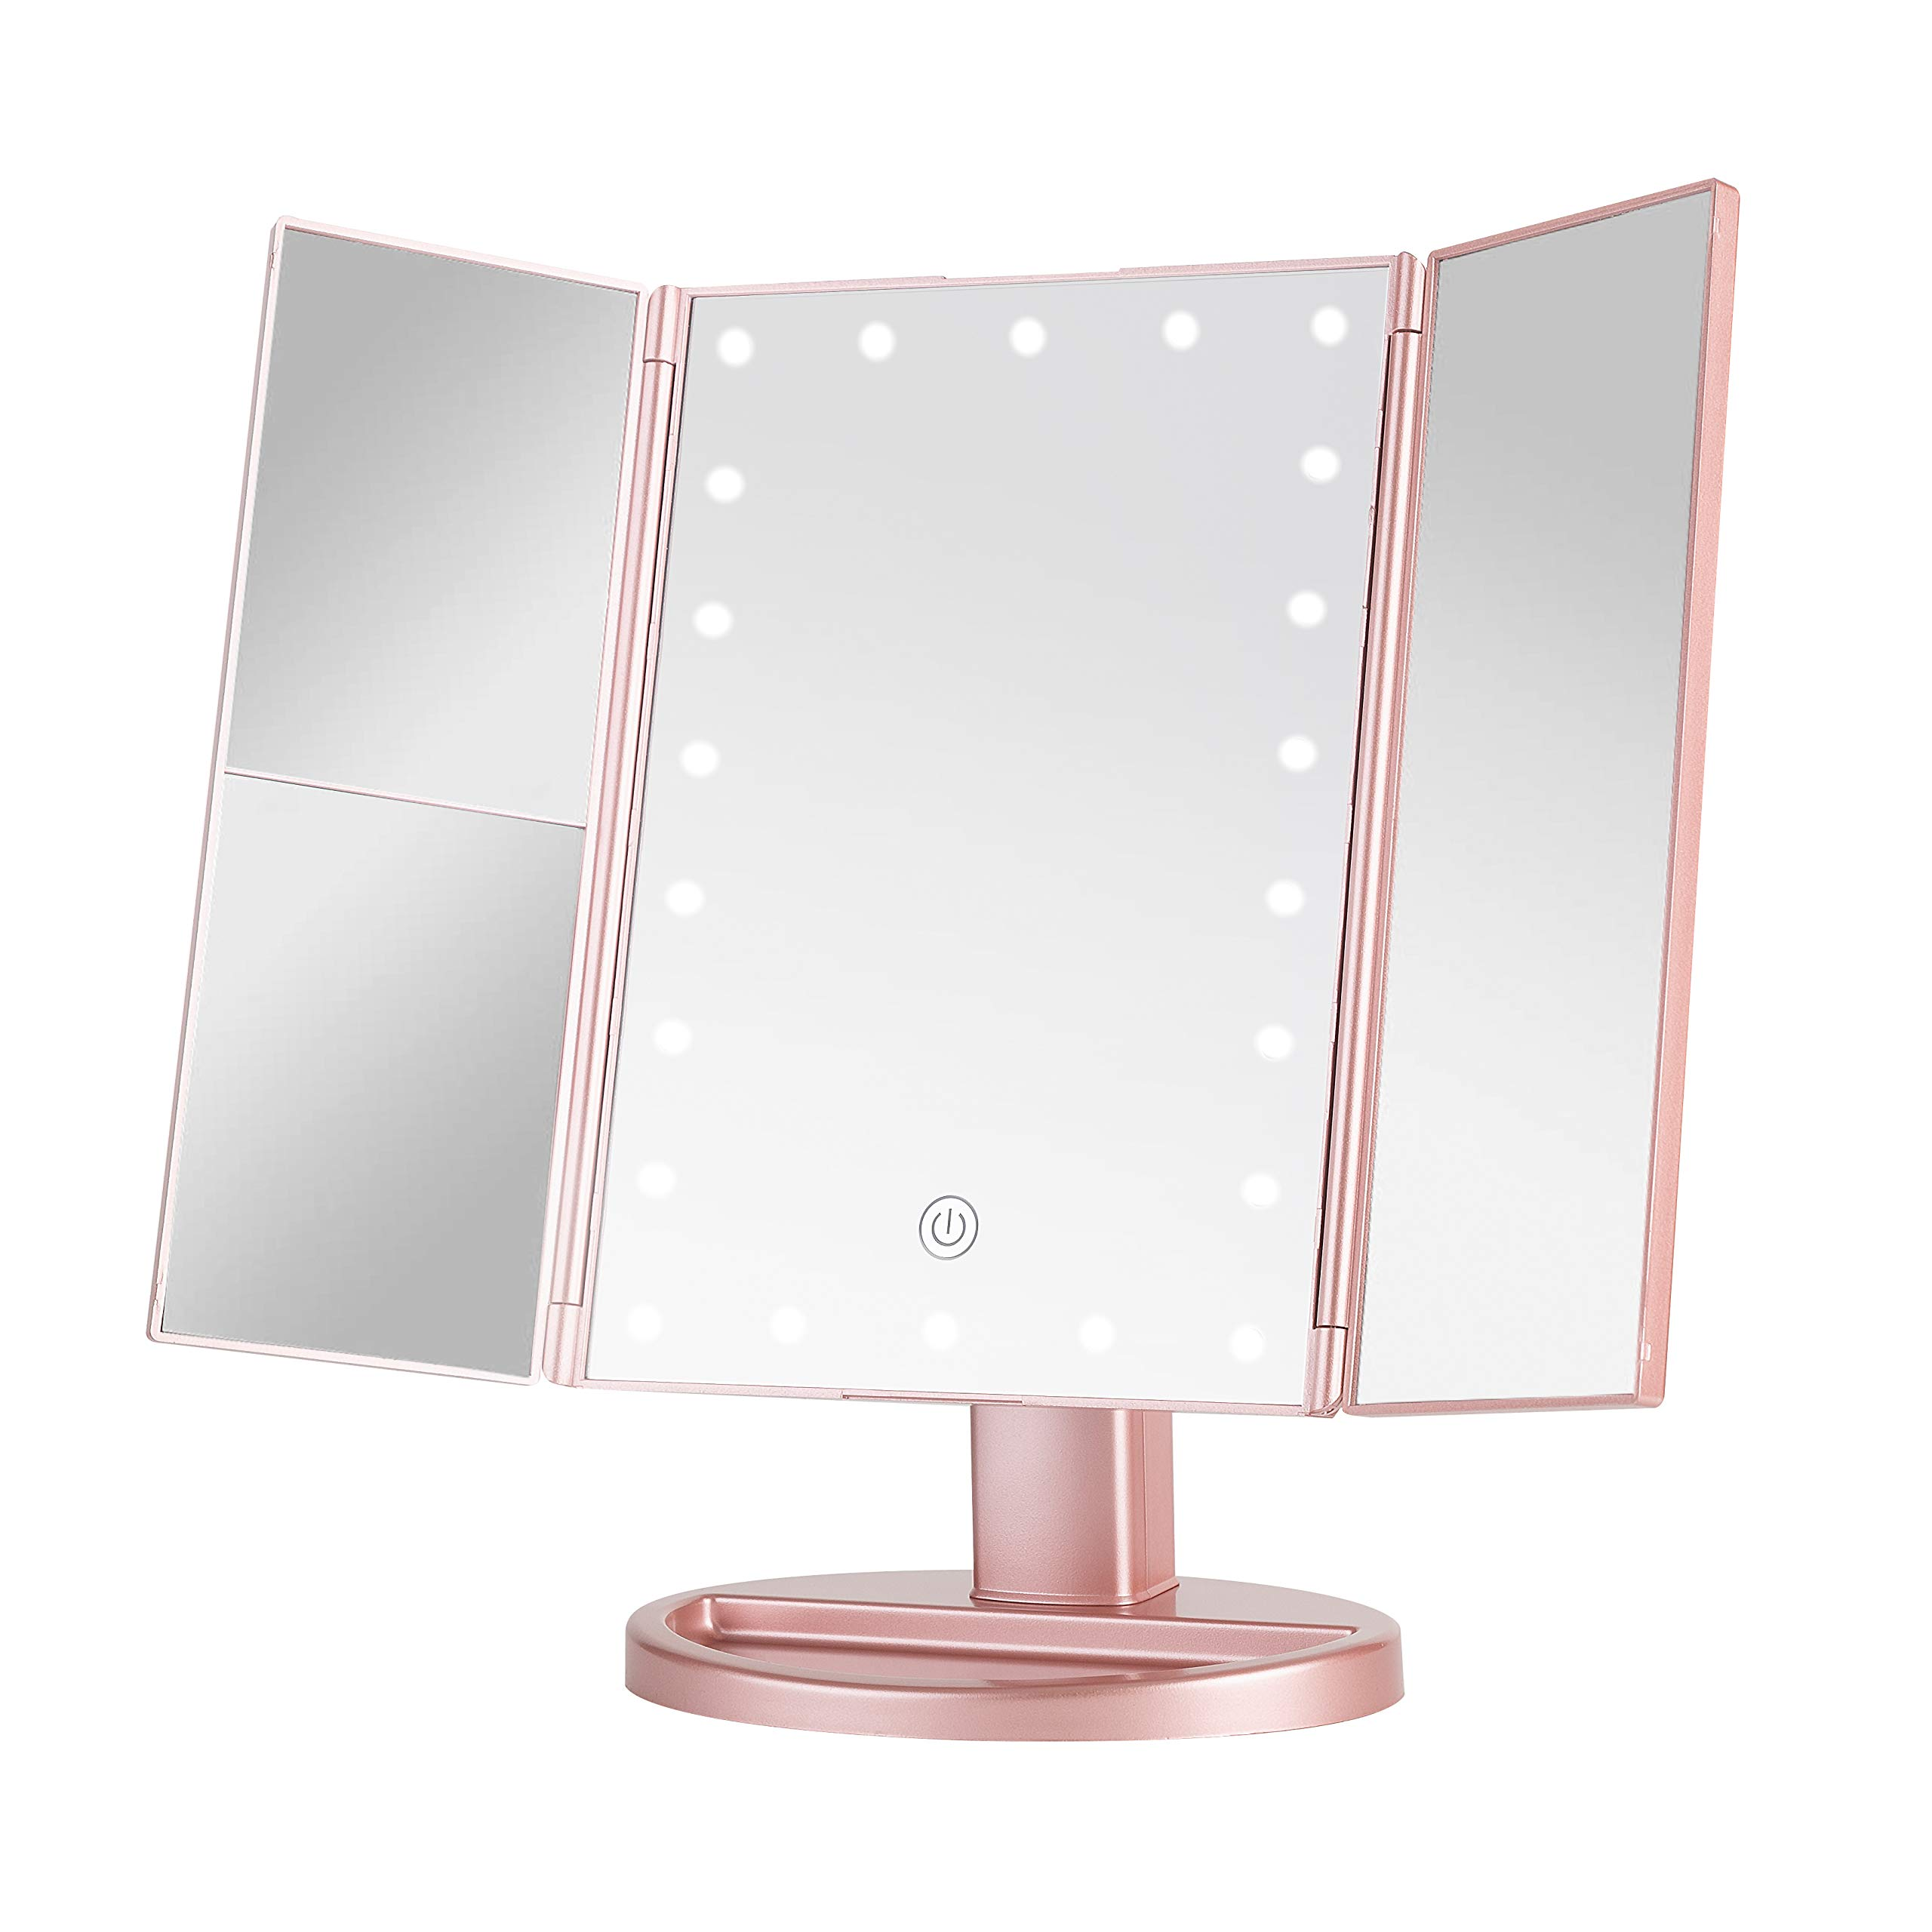 Sevillin Makeup Mirror with Lights,22 LED Vanity Mirror with 1X/2X3X Magnifica,Touch Screen Switch,Dual Power Supply,Portable Trifold Makeup Mirror Cosmetic Lighted Up Mirrortion Rose Gold